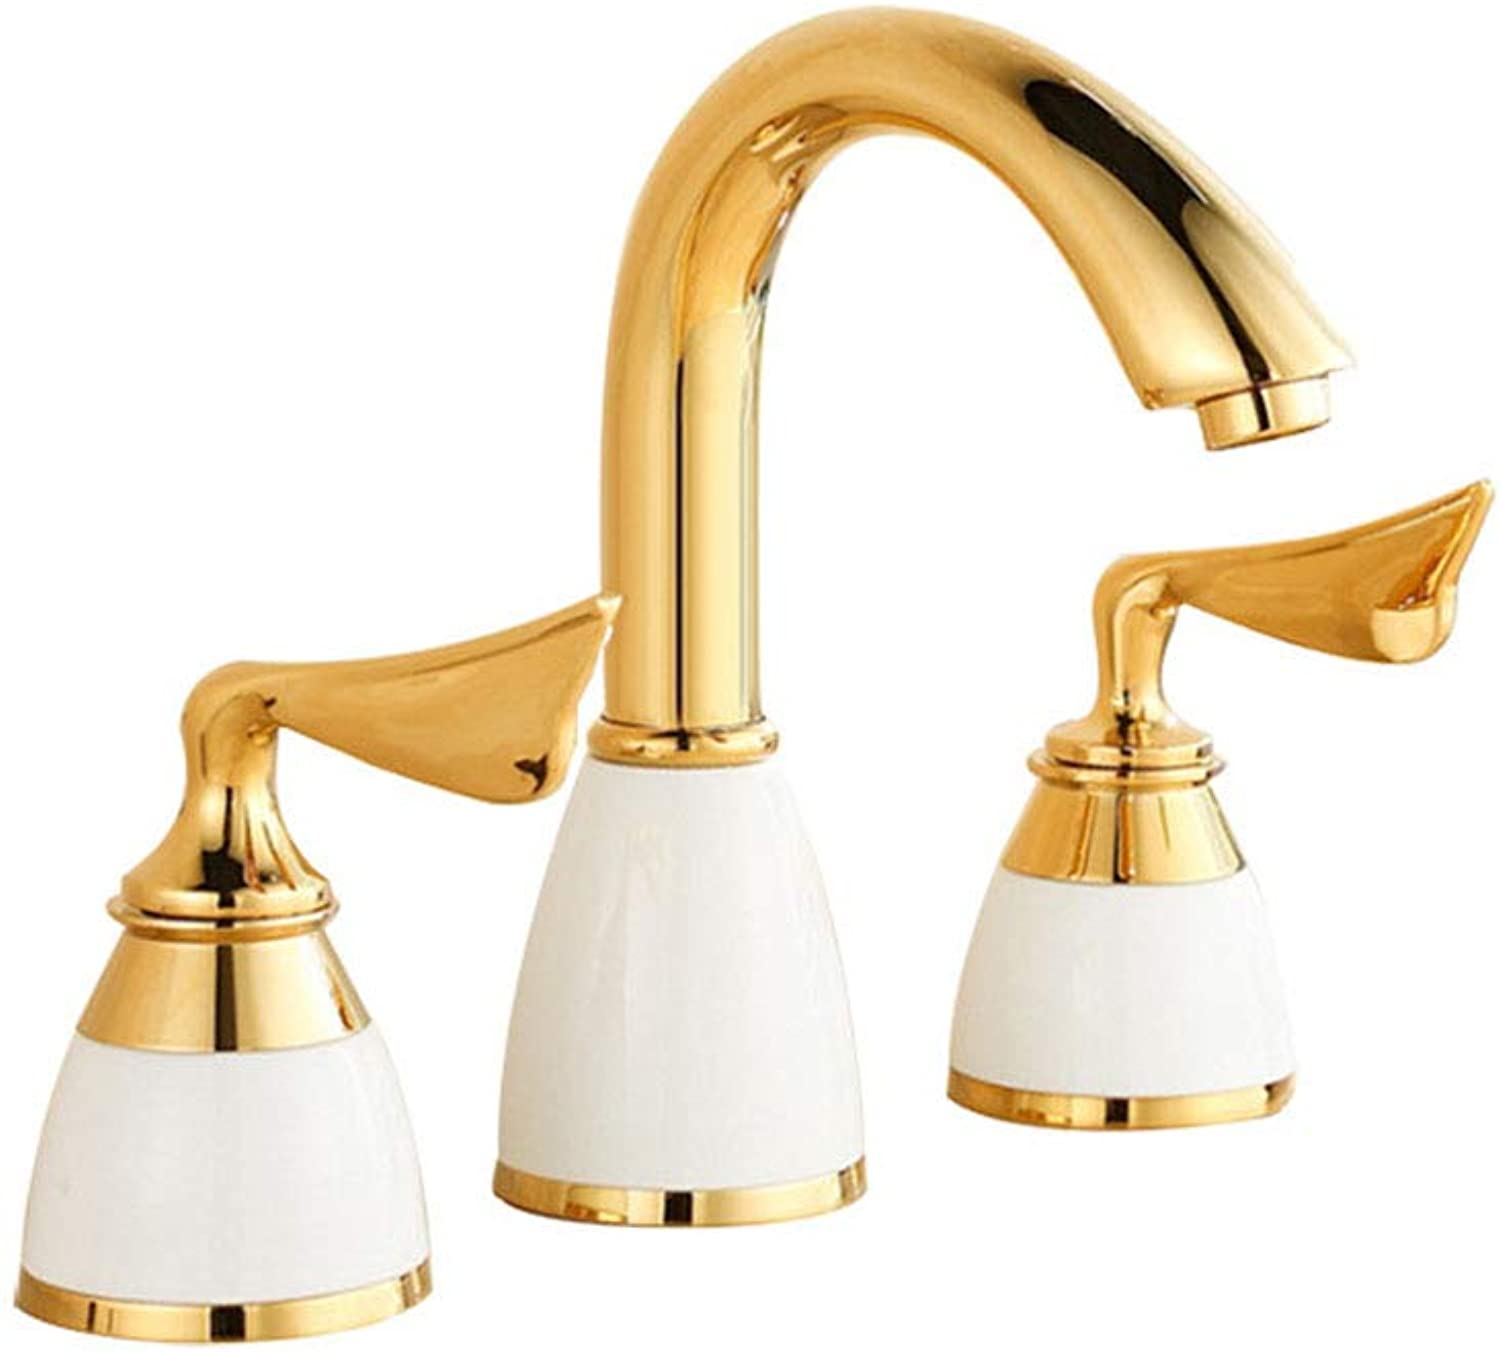 Yaoyaoxiang Split three-hole faucet, hot and cold double faucet, all-copper European jade faucet,B